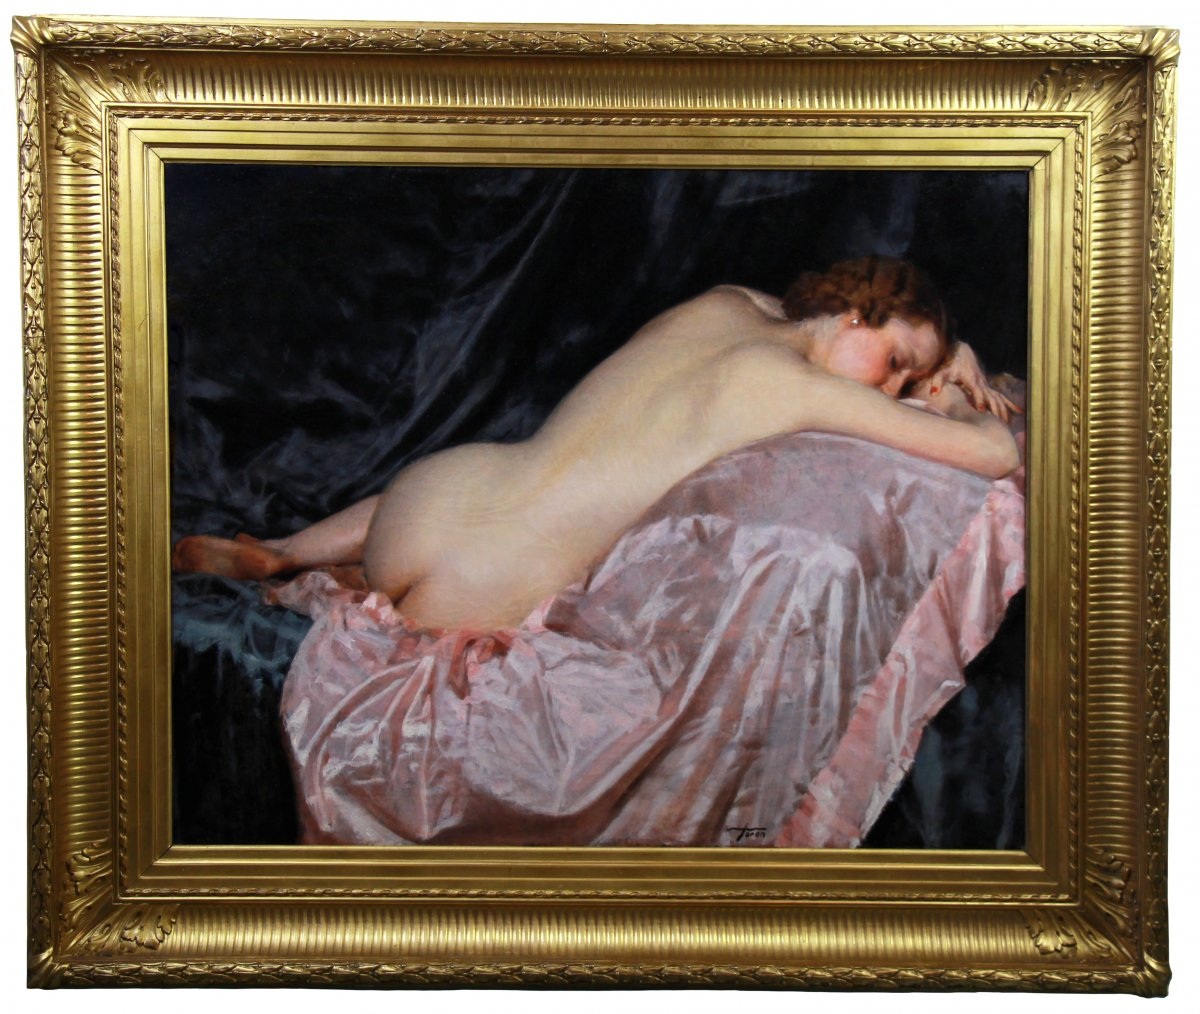 Oil On Canvas, Female Nude On A Pink Sheet By Maurice Joron